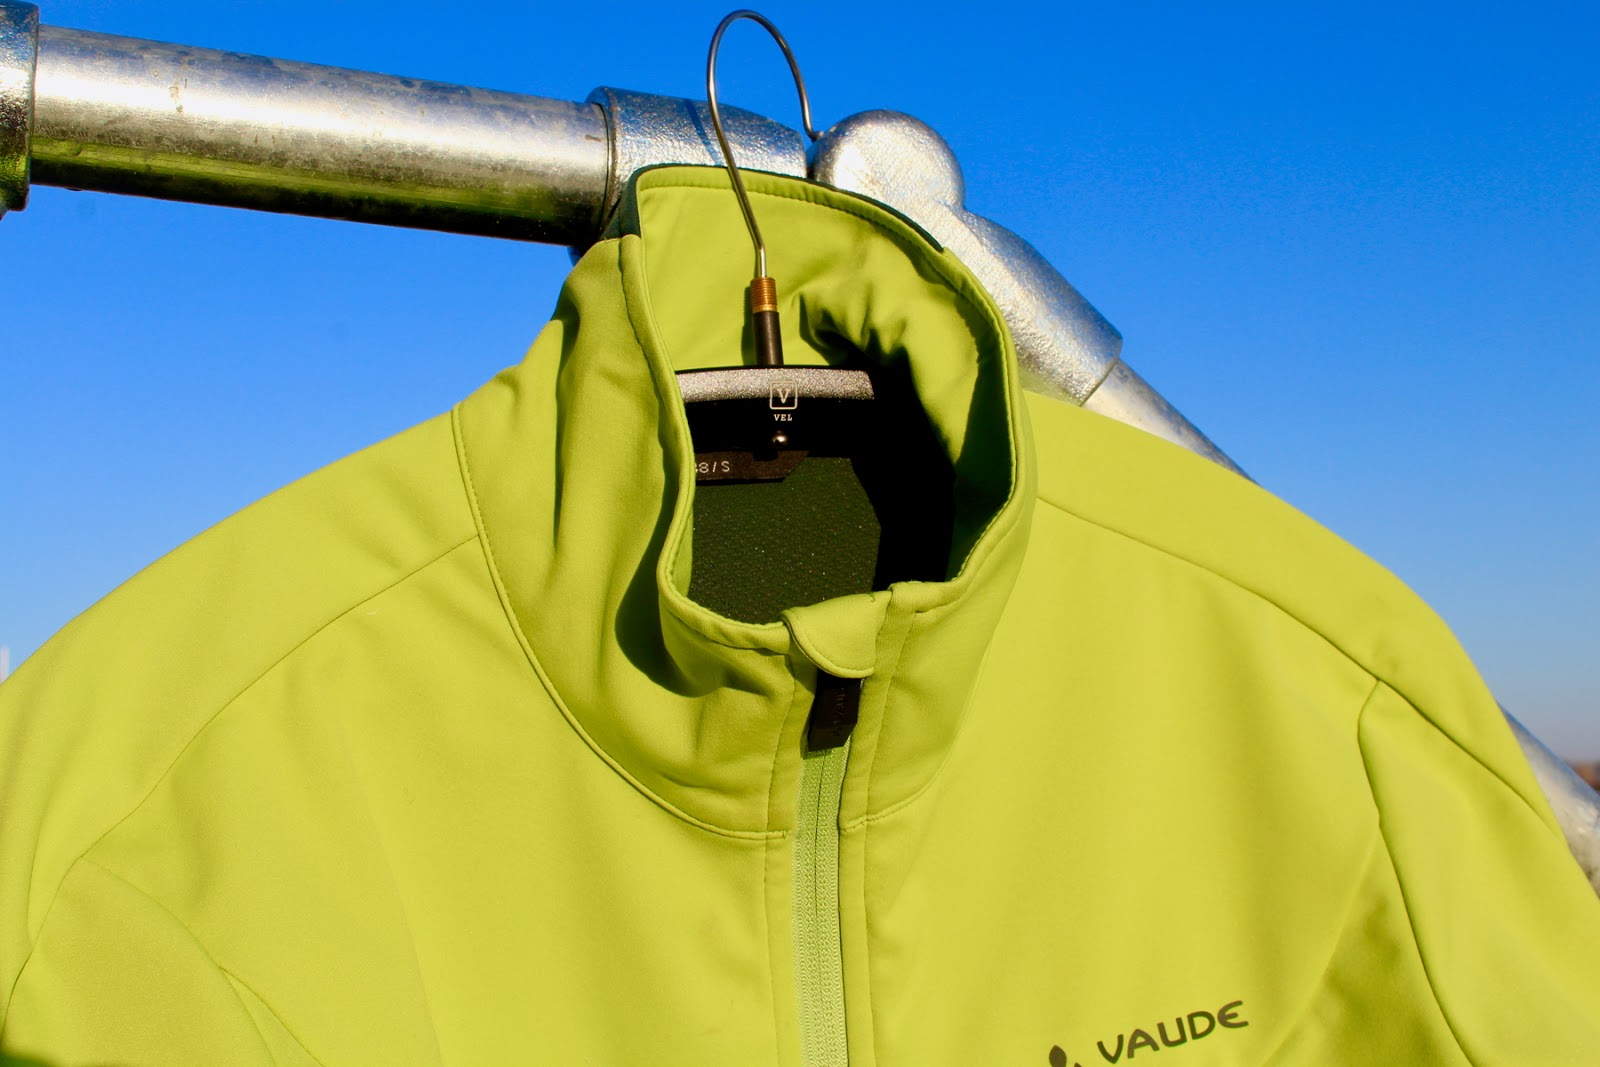 new product 7c6d3 644d3 Review - Vaude Men's Steglio Softshell Winter Cycling Jacket